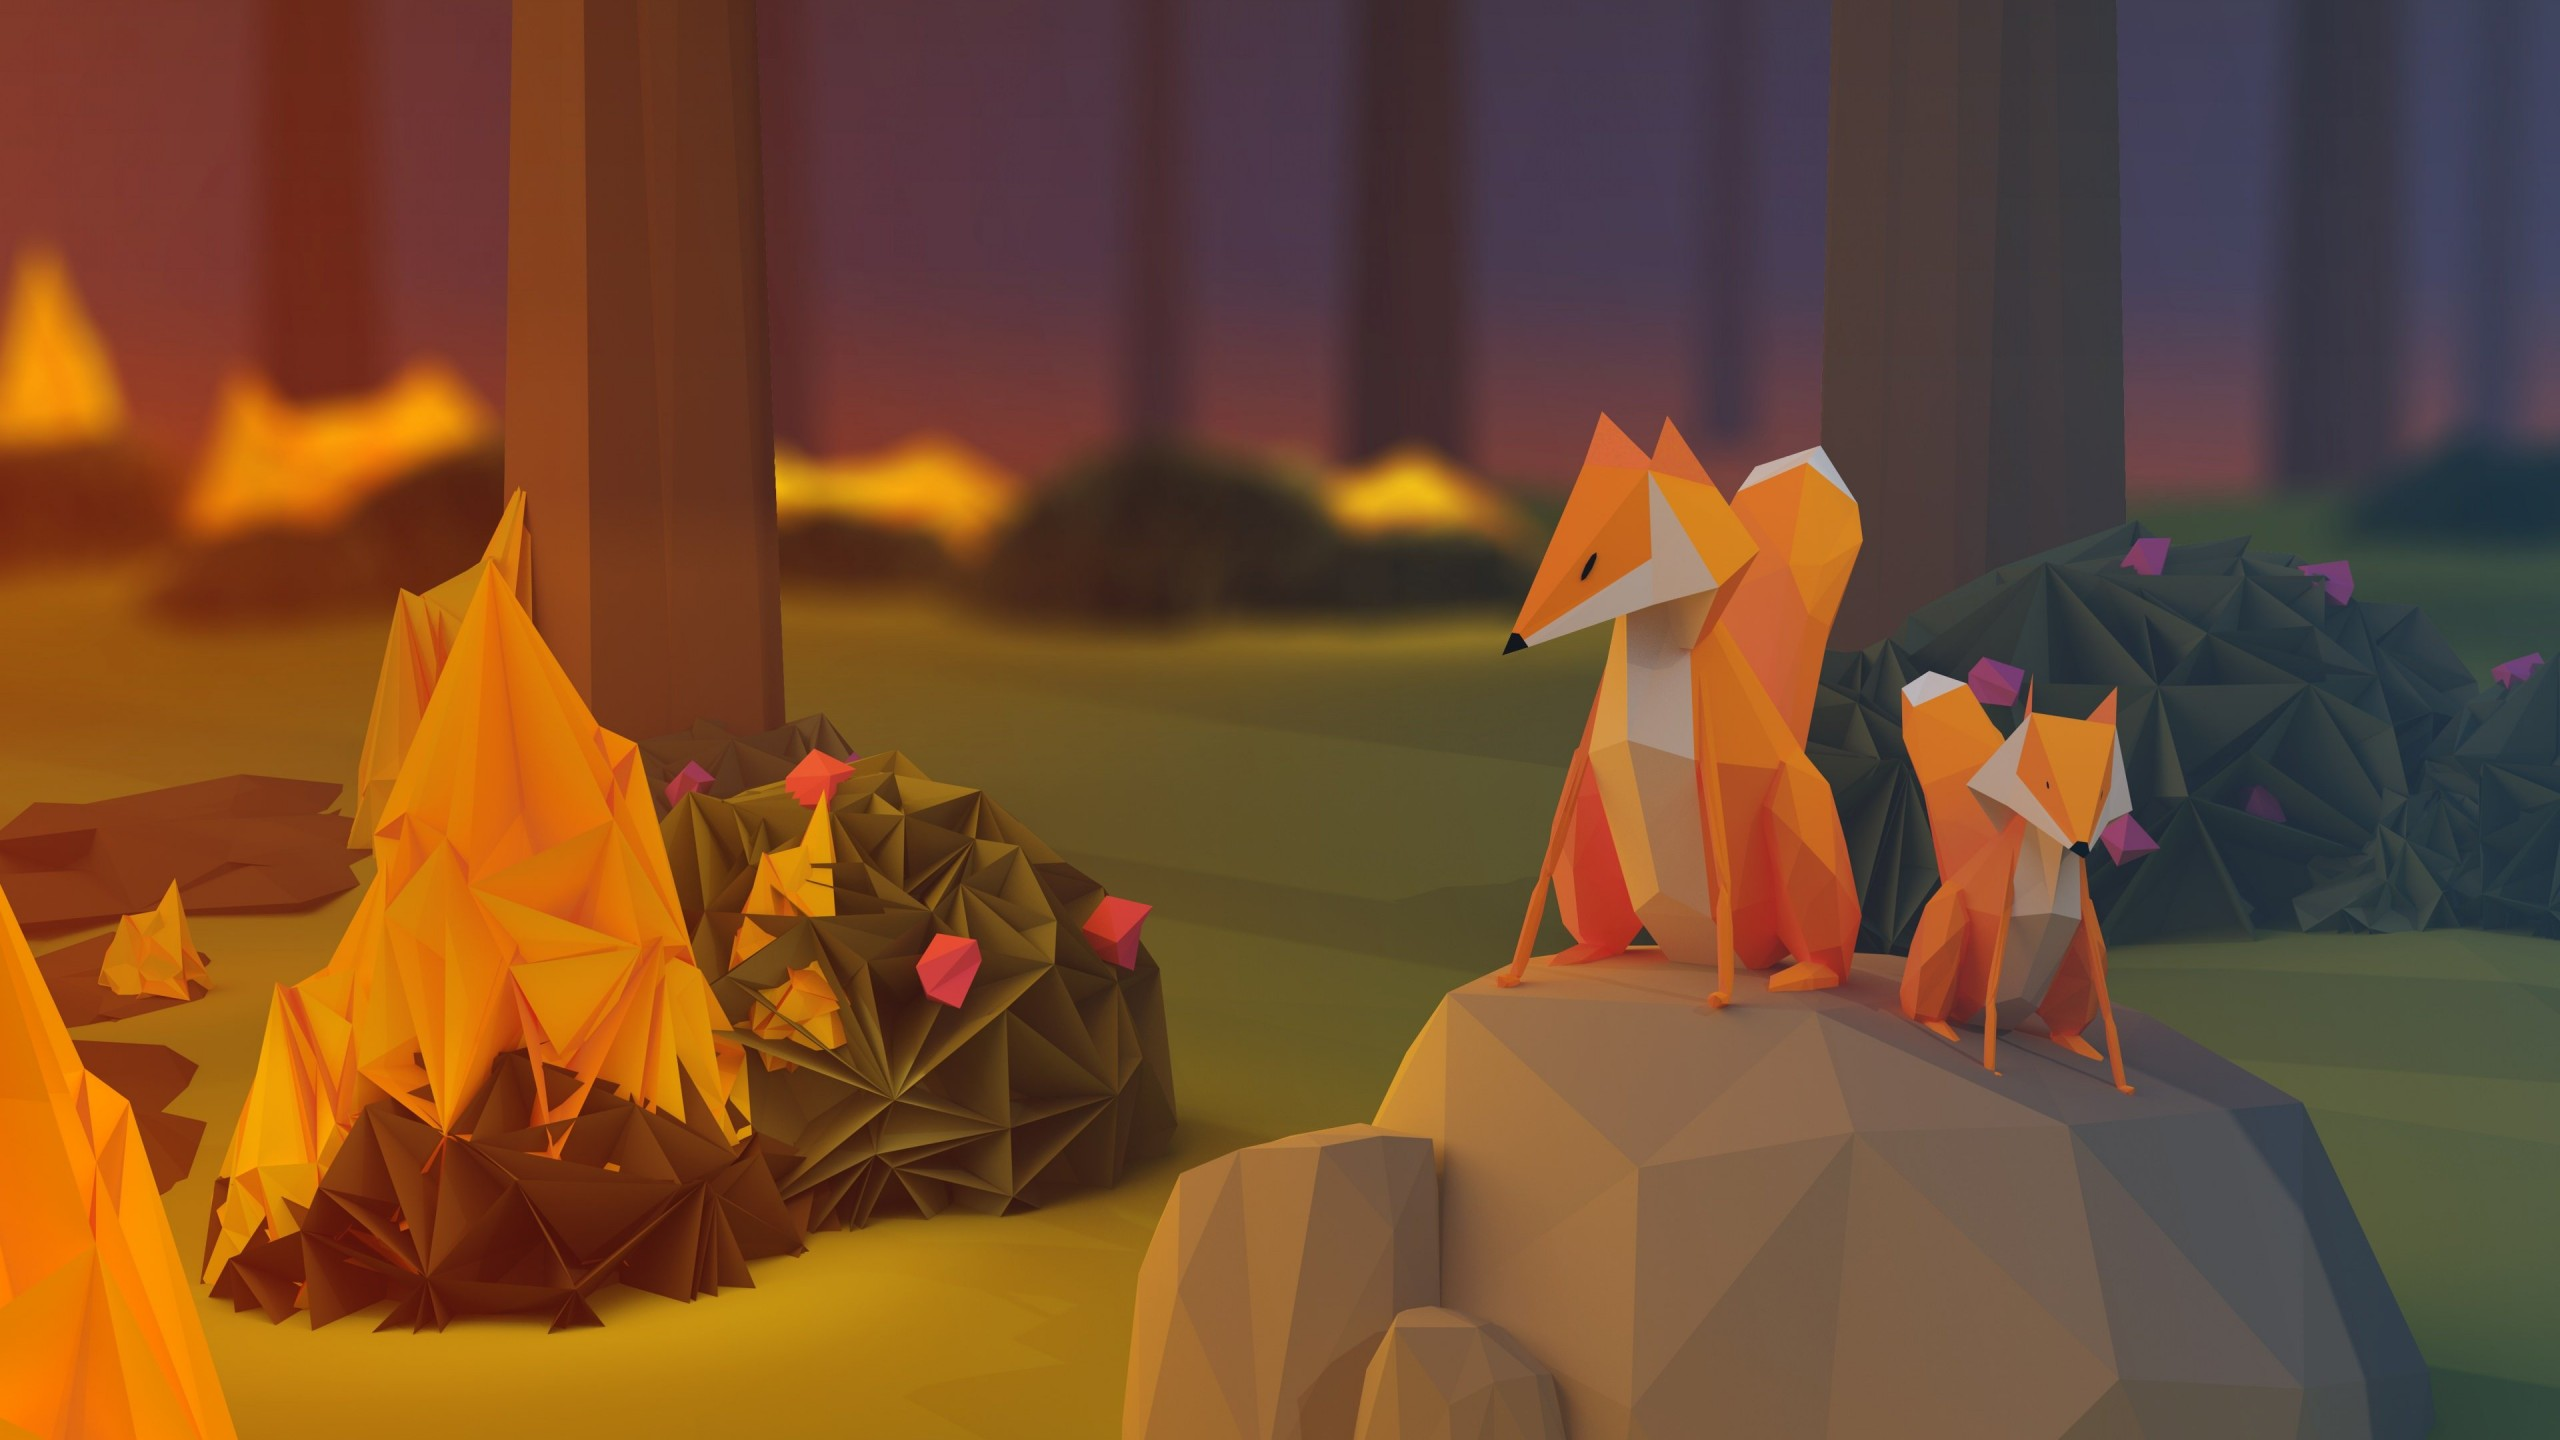 Low Poly Foxes Wallpaper for Desktop 2560x1440